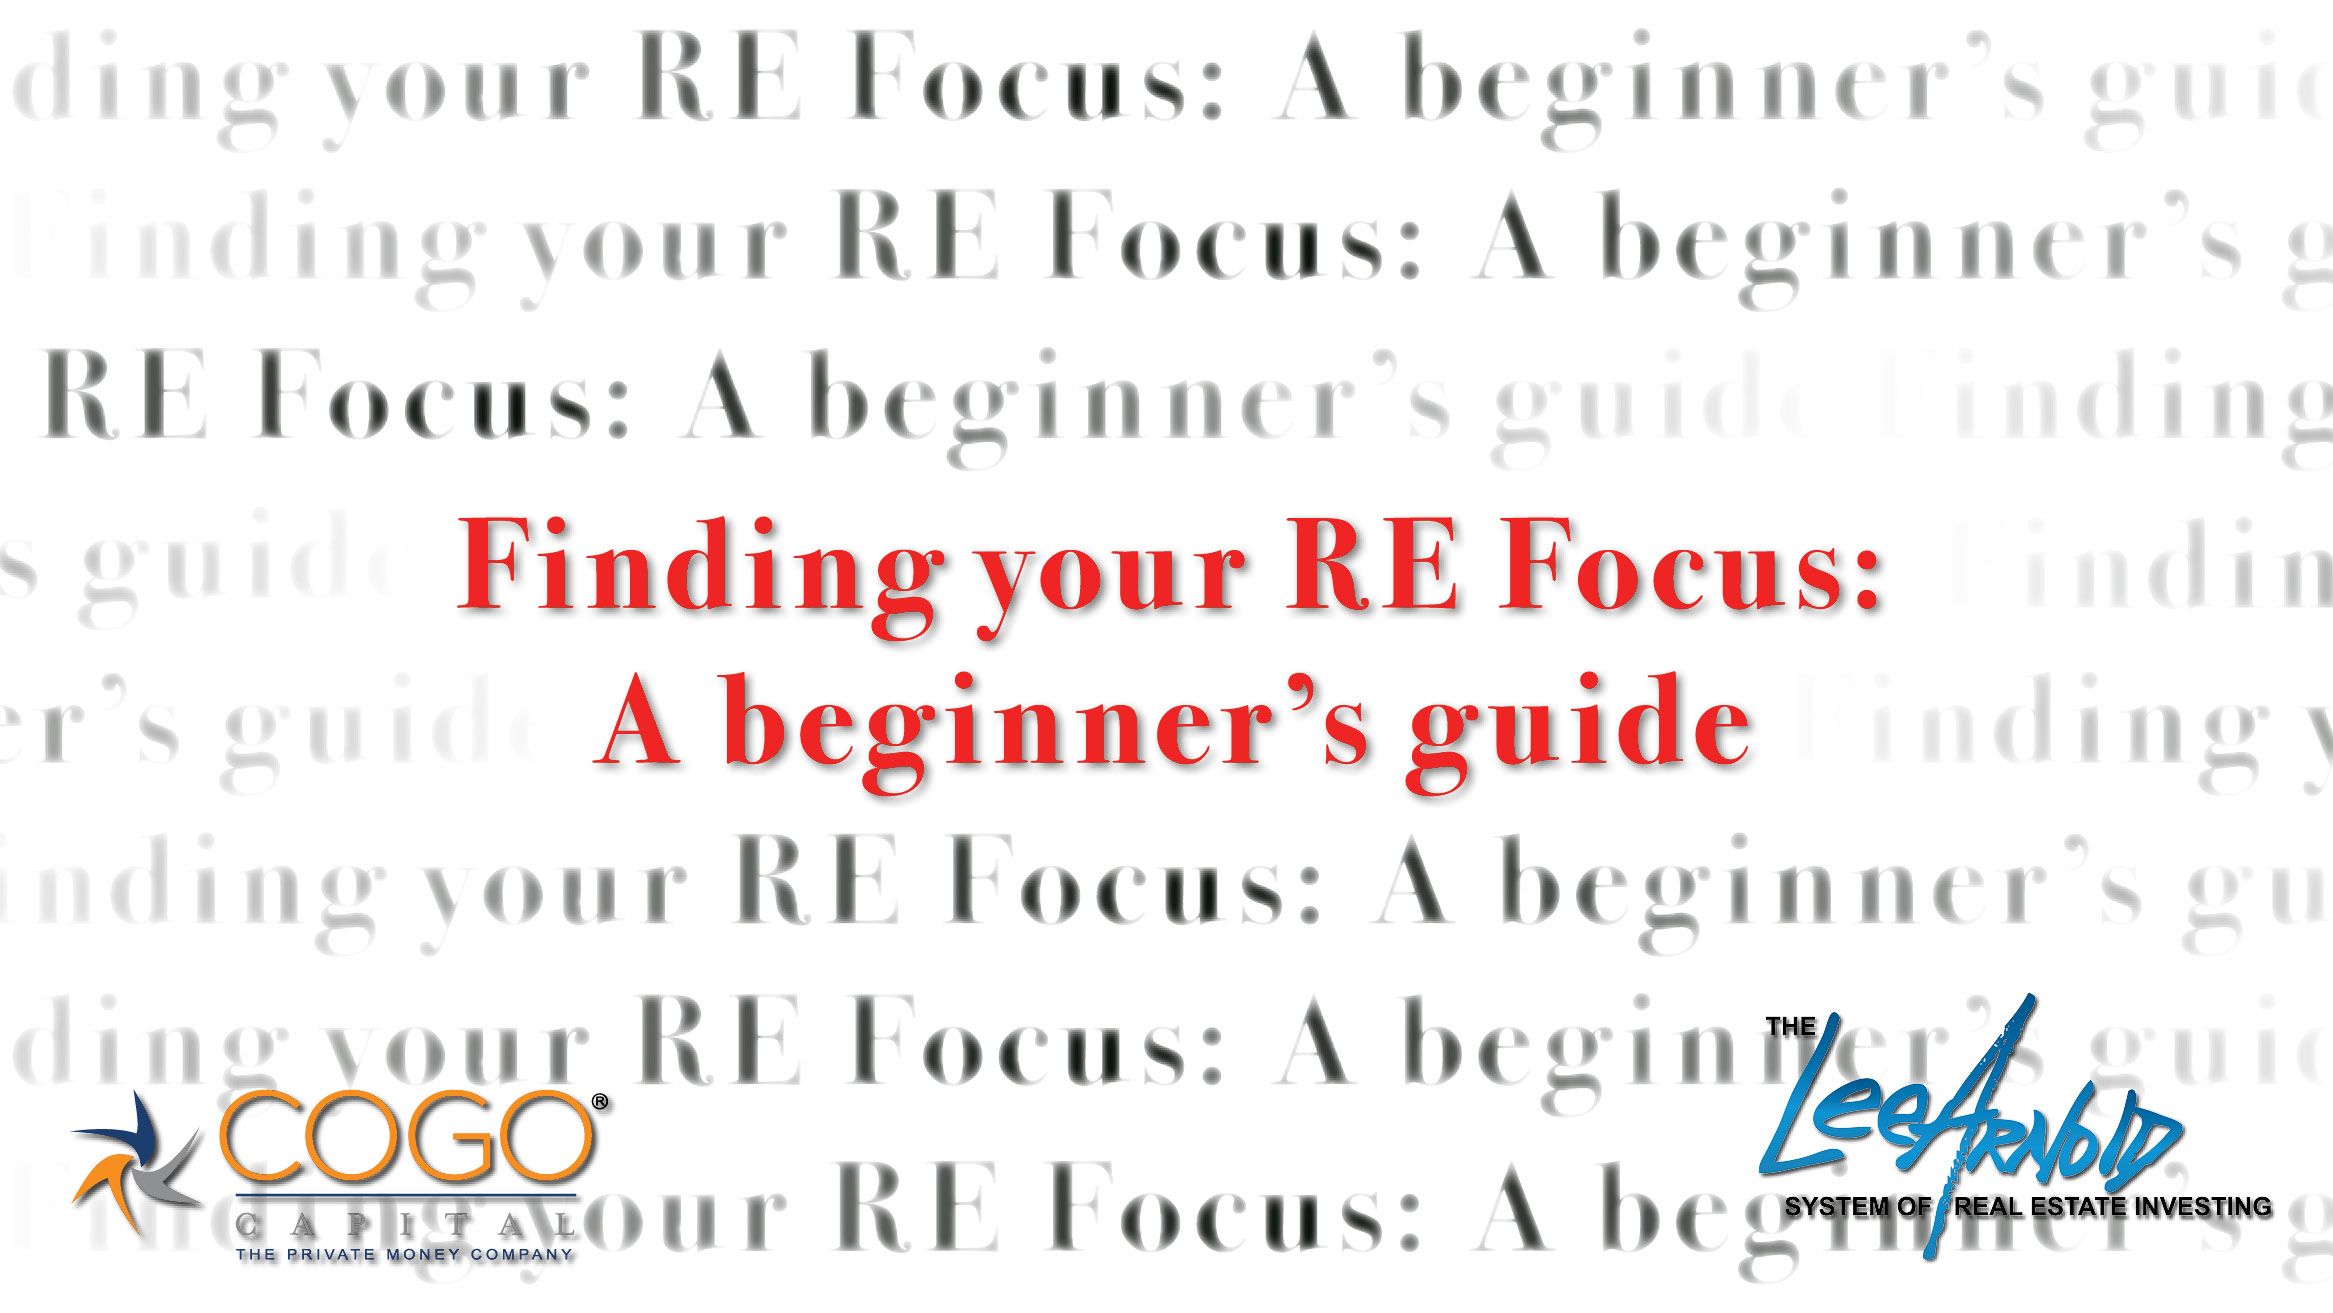 Finding your RE Focus: A beginner's guide